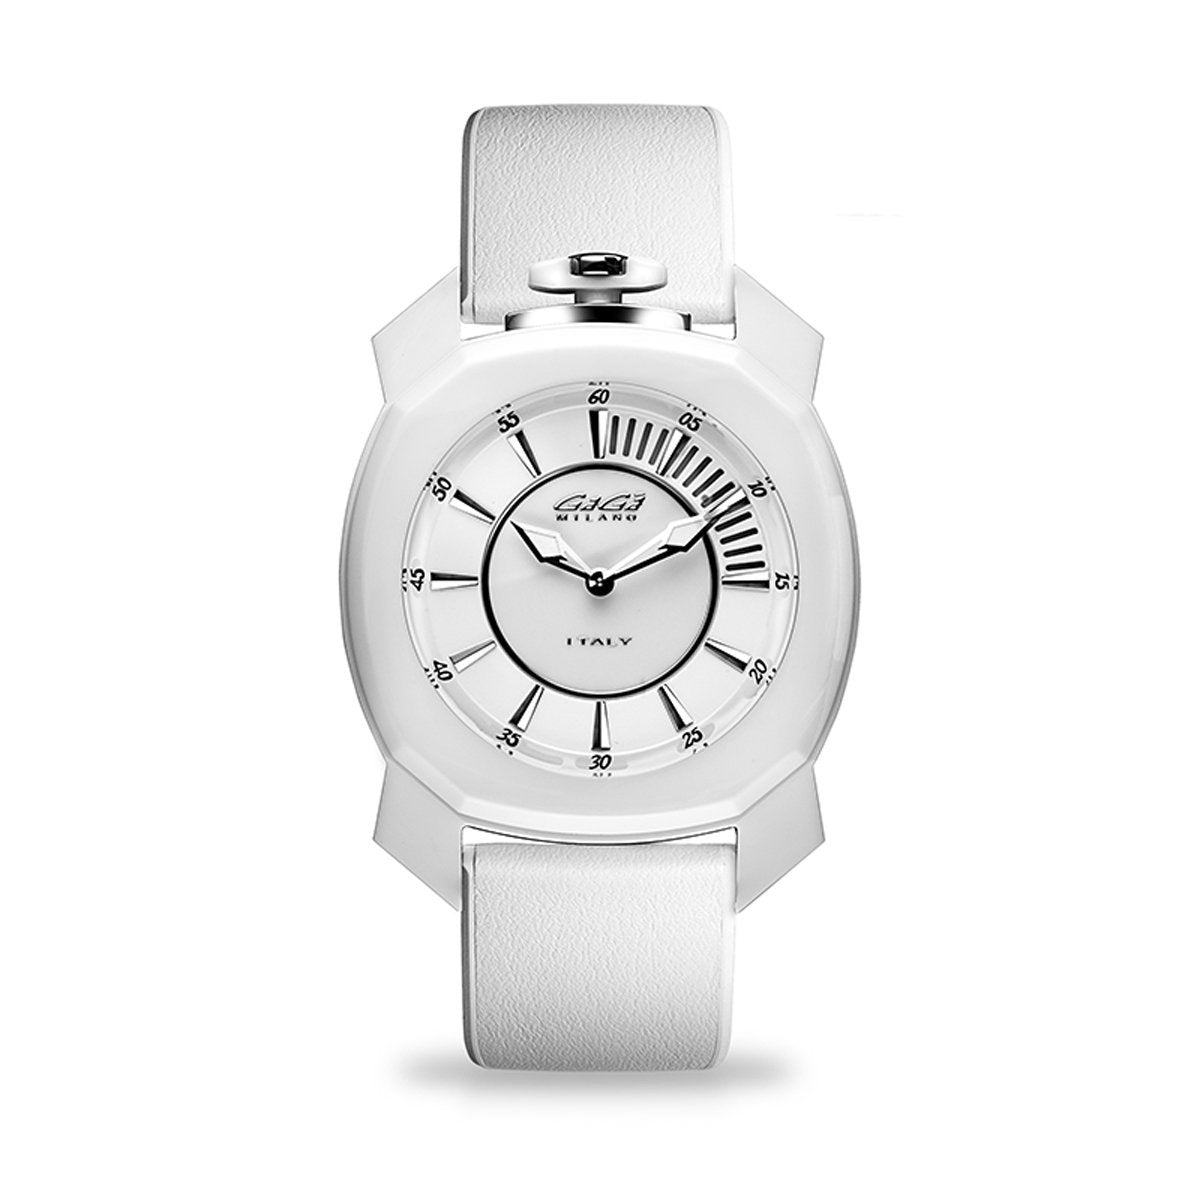 Gaga Milano Frame_One White Ceramic - Watches & Crystals